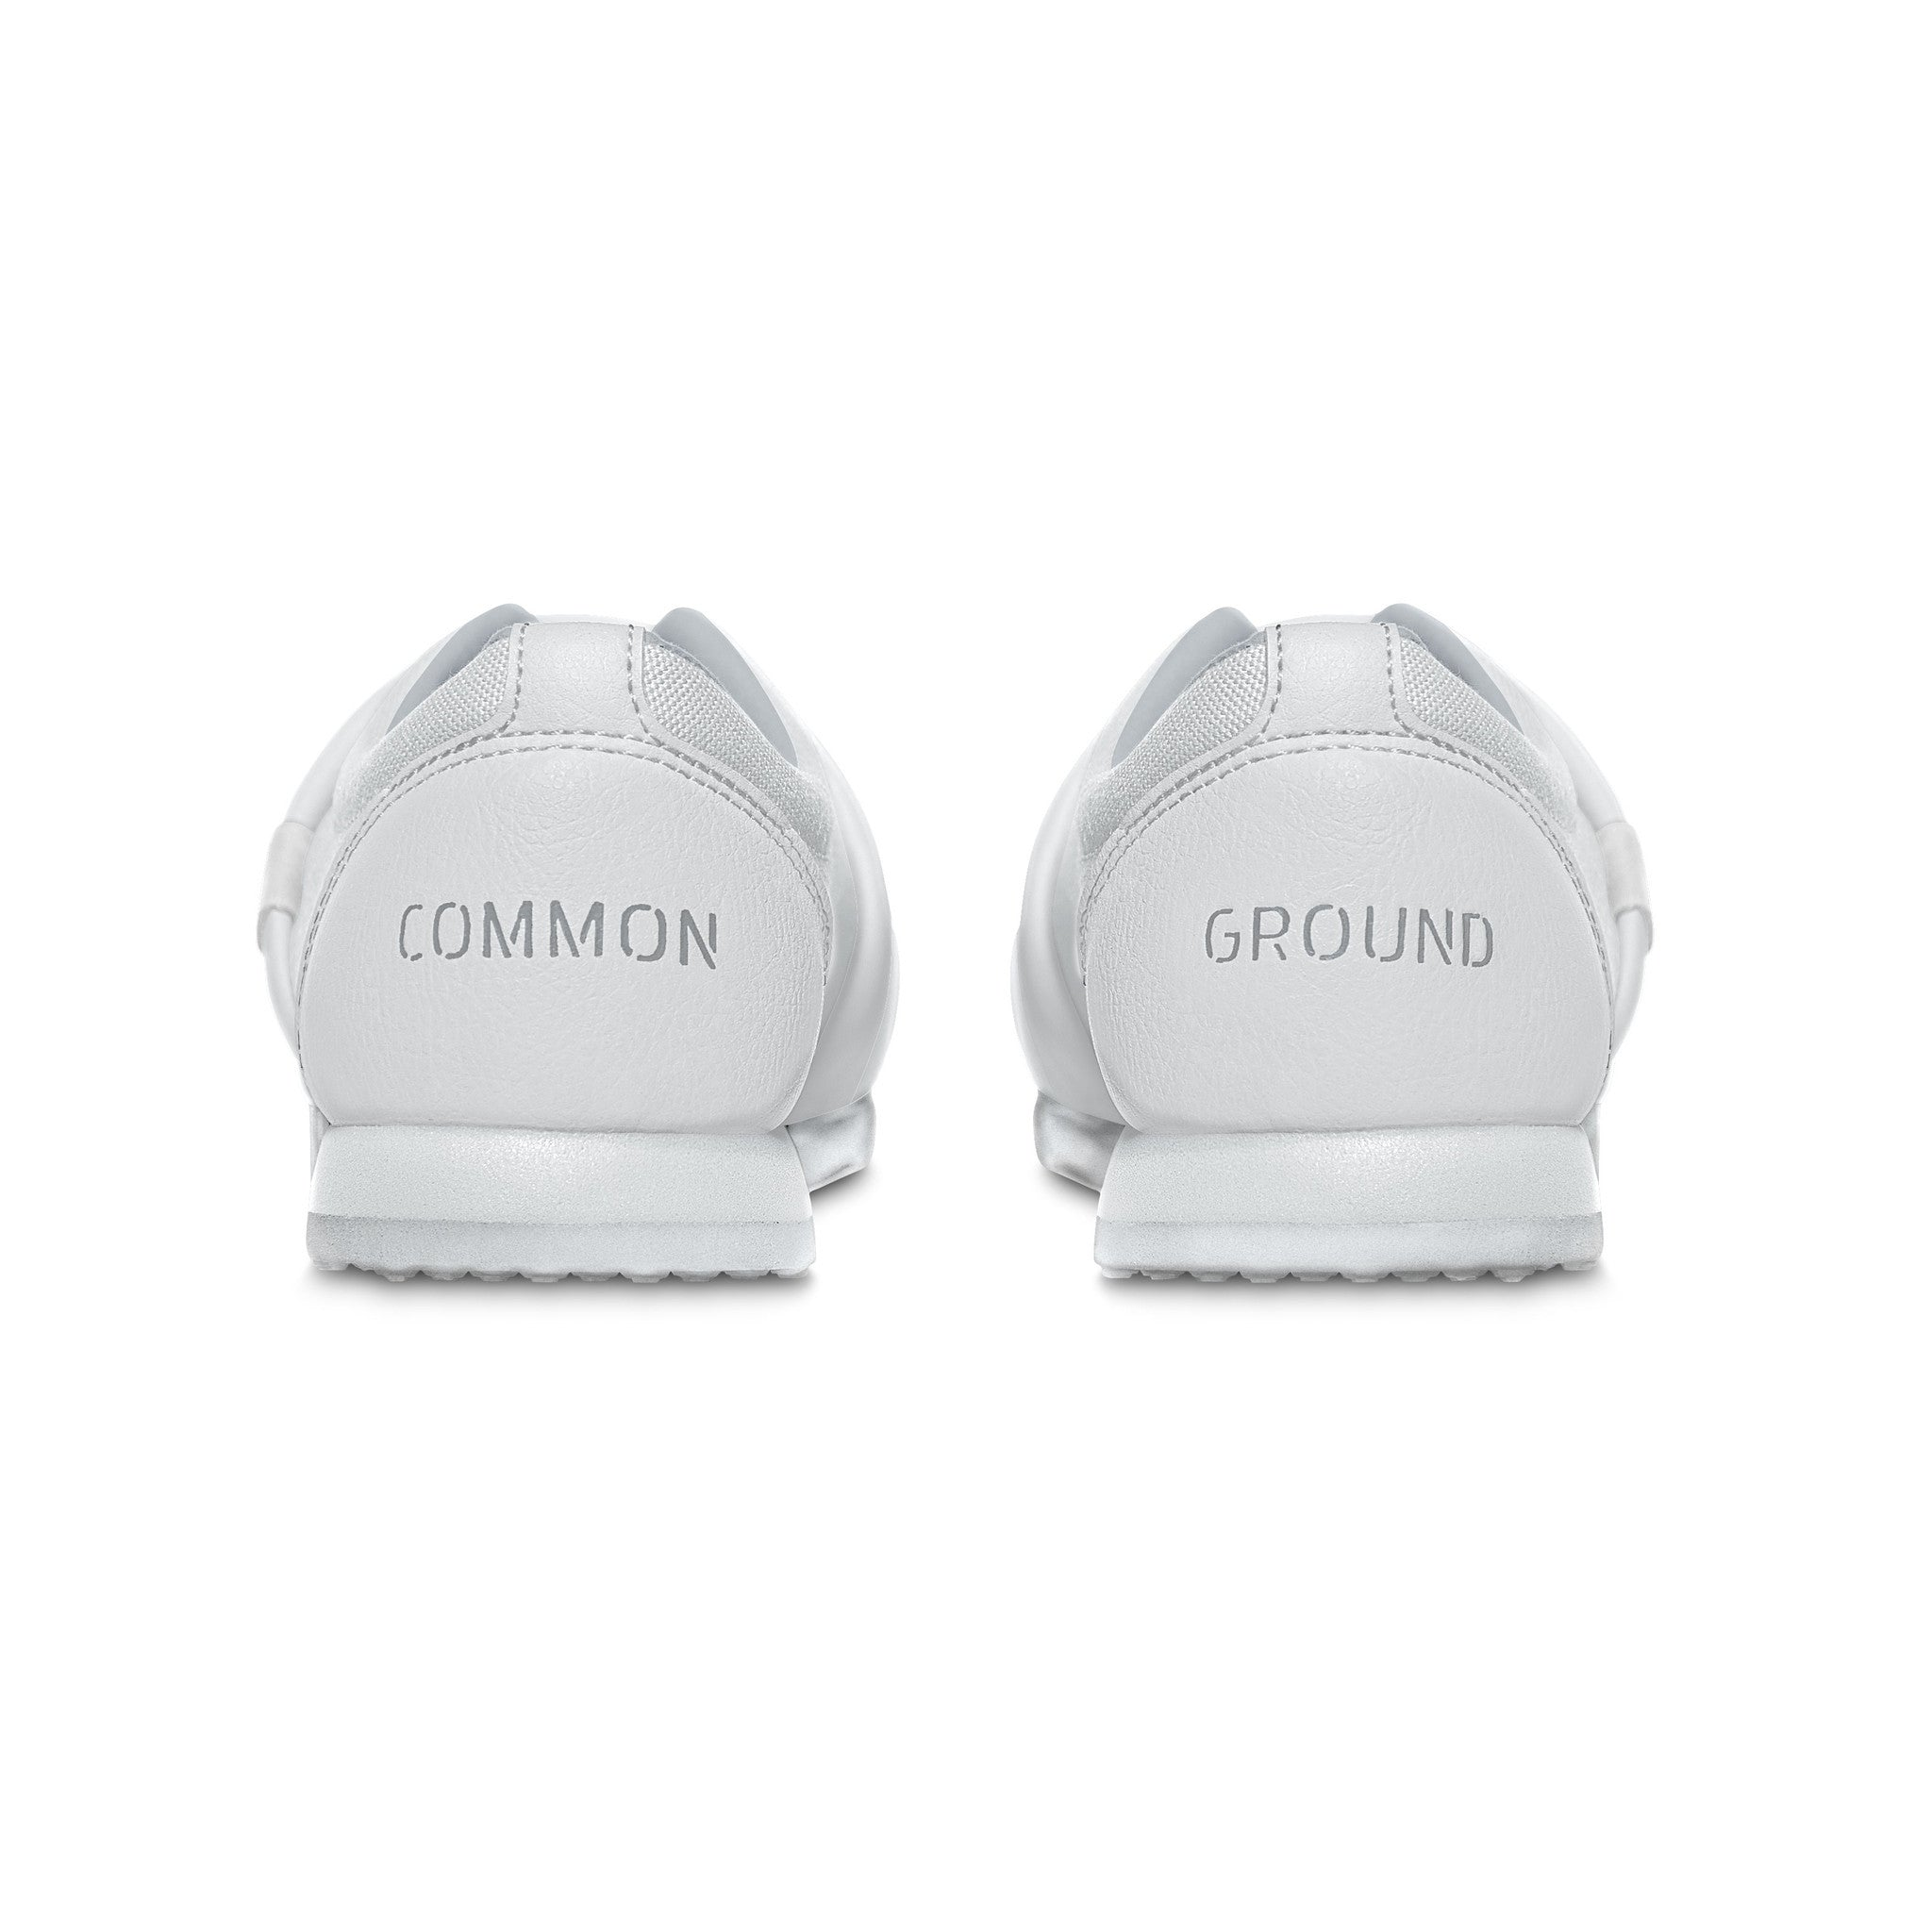 Bright_White - Common Ground Footwear Shoes Heel View